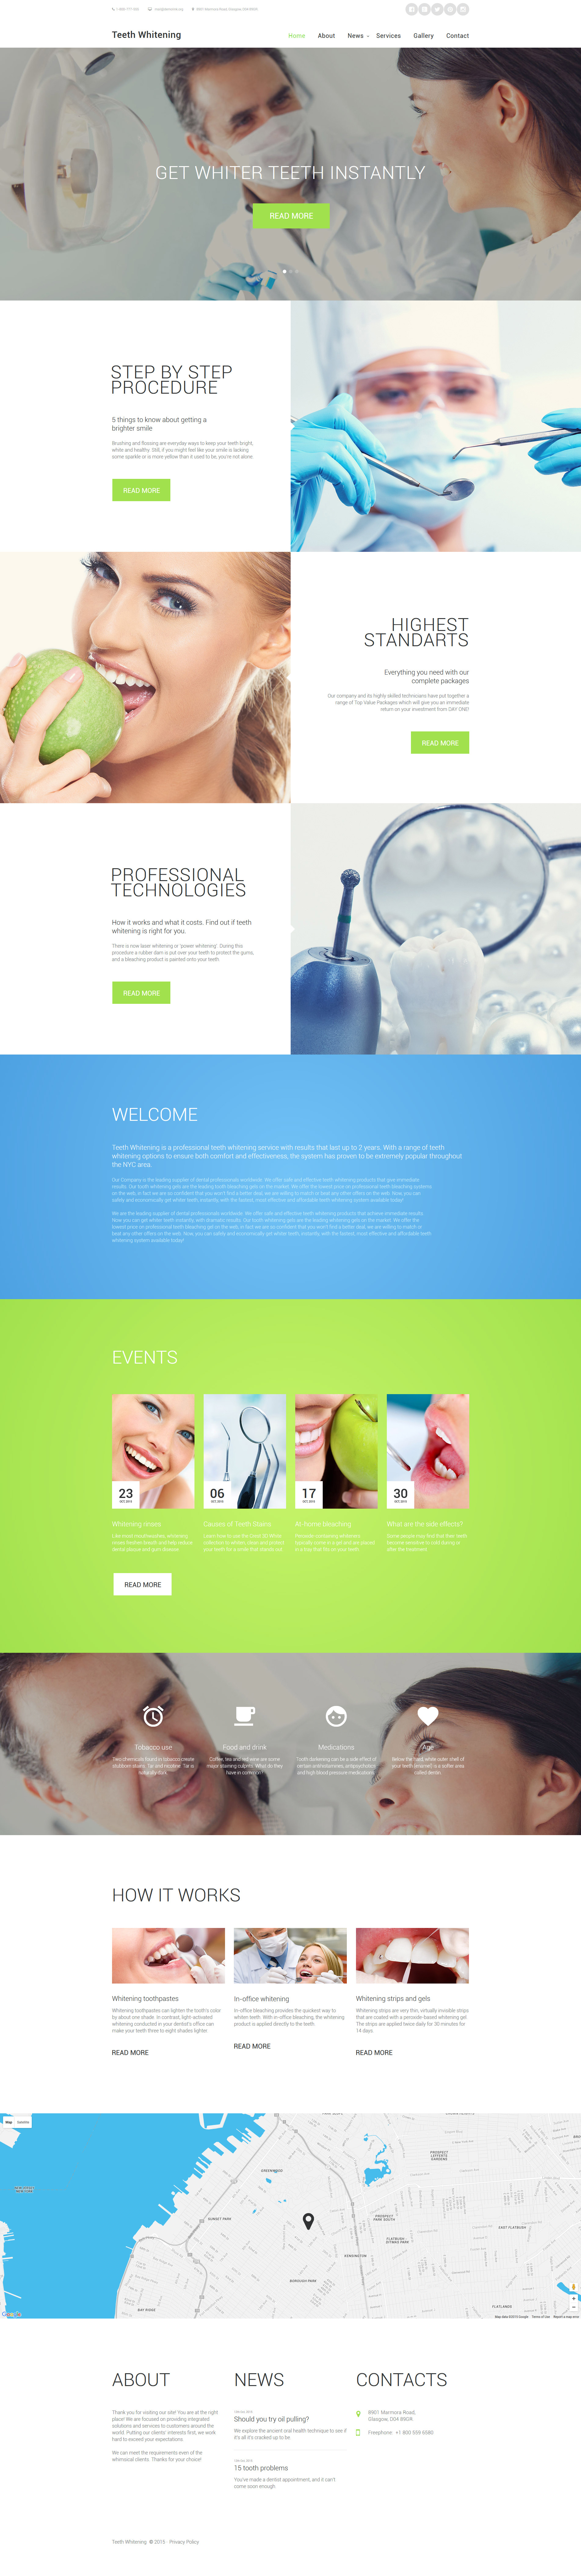 Teeth Whitening Website Template - screenshot